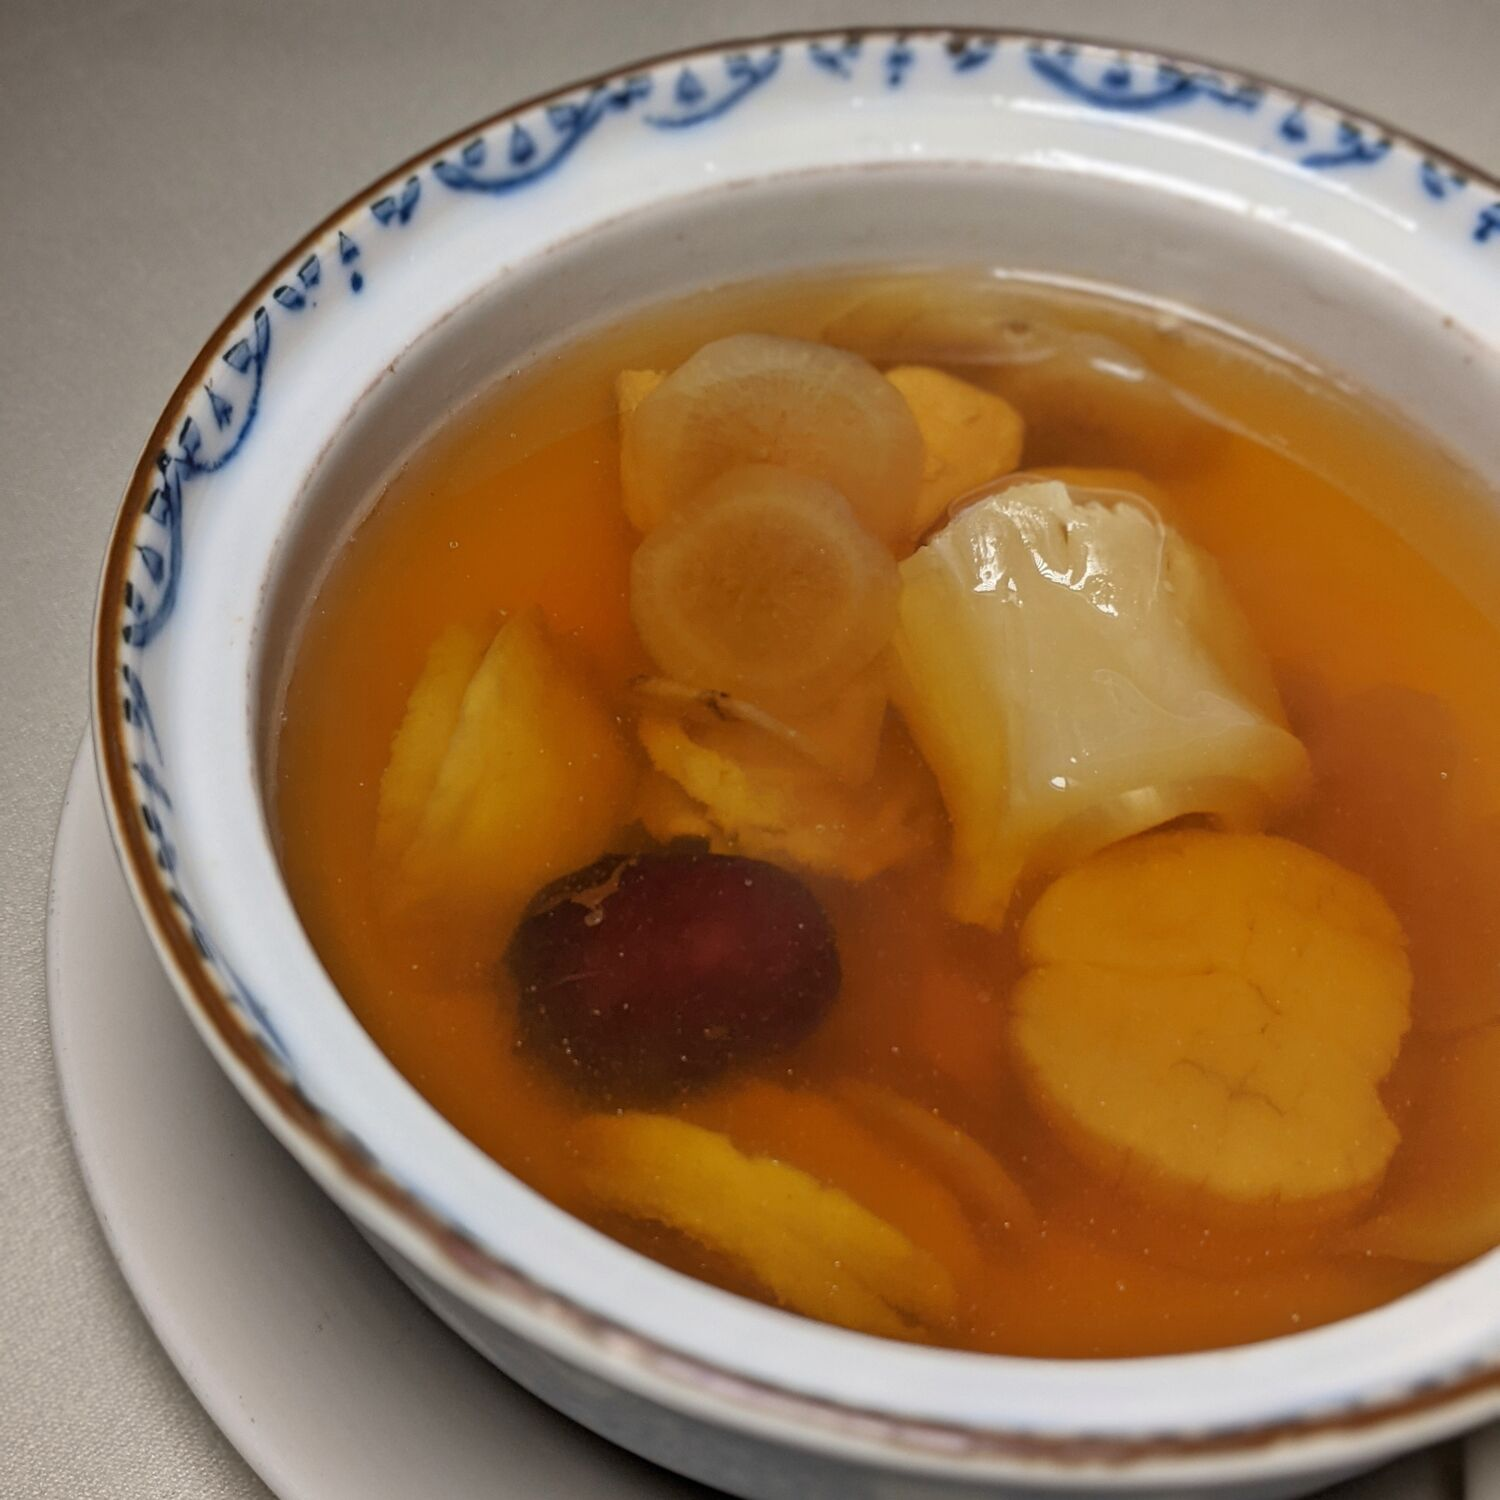 Mandarin Orchard Singapore Shisen Hanten Double-boiled Chicken Consommé with Greater Burdock, Baby Abalone, Dried Scallop and Red Date